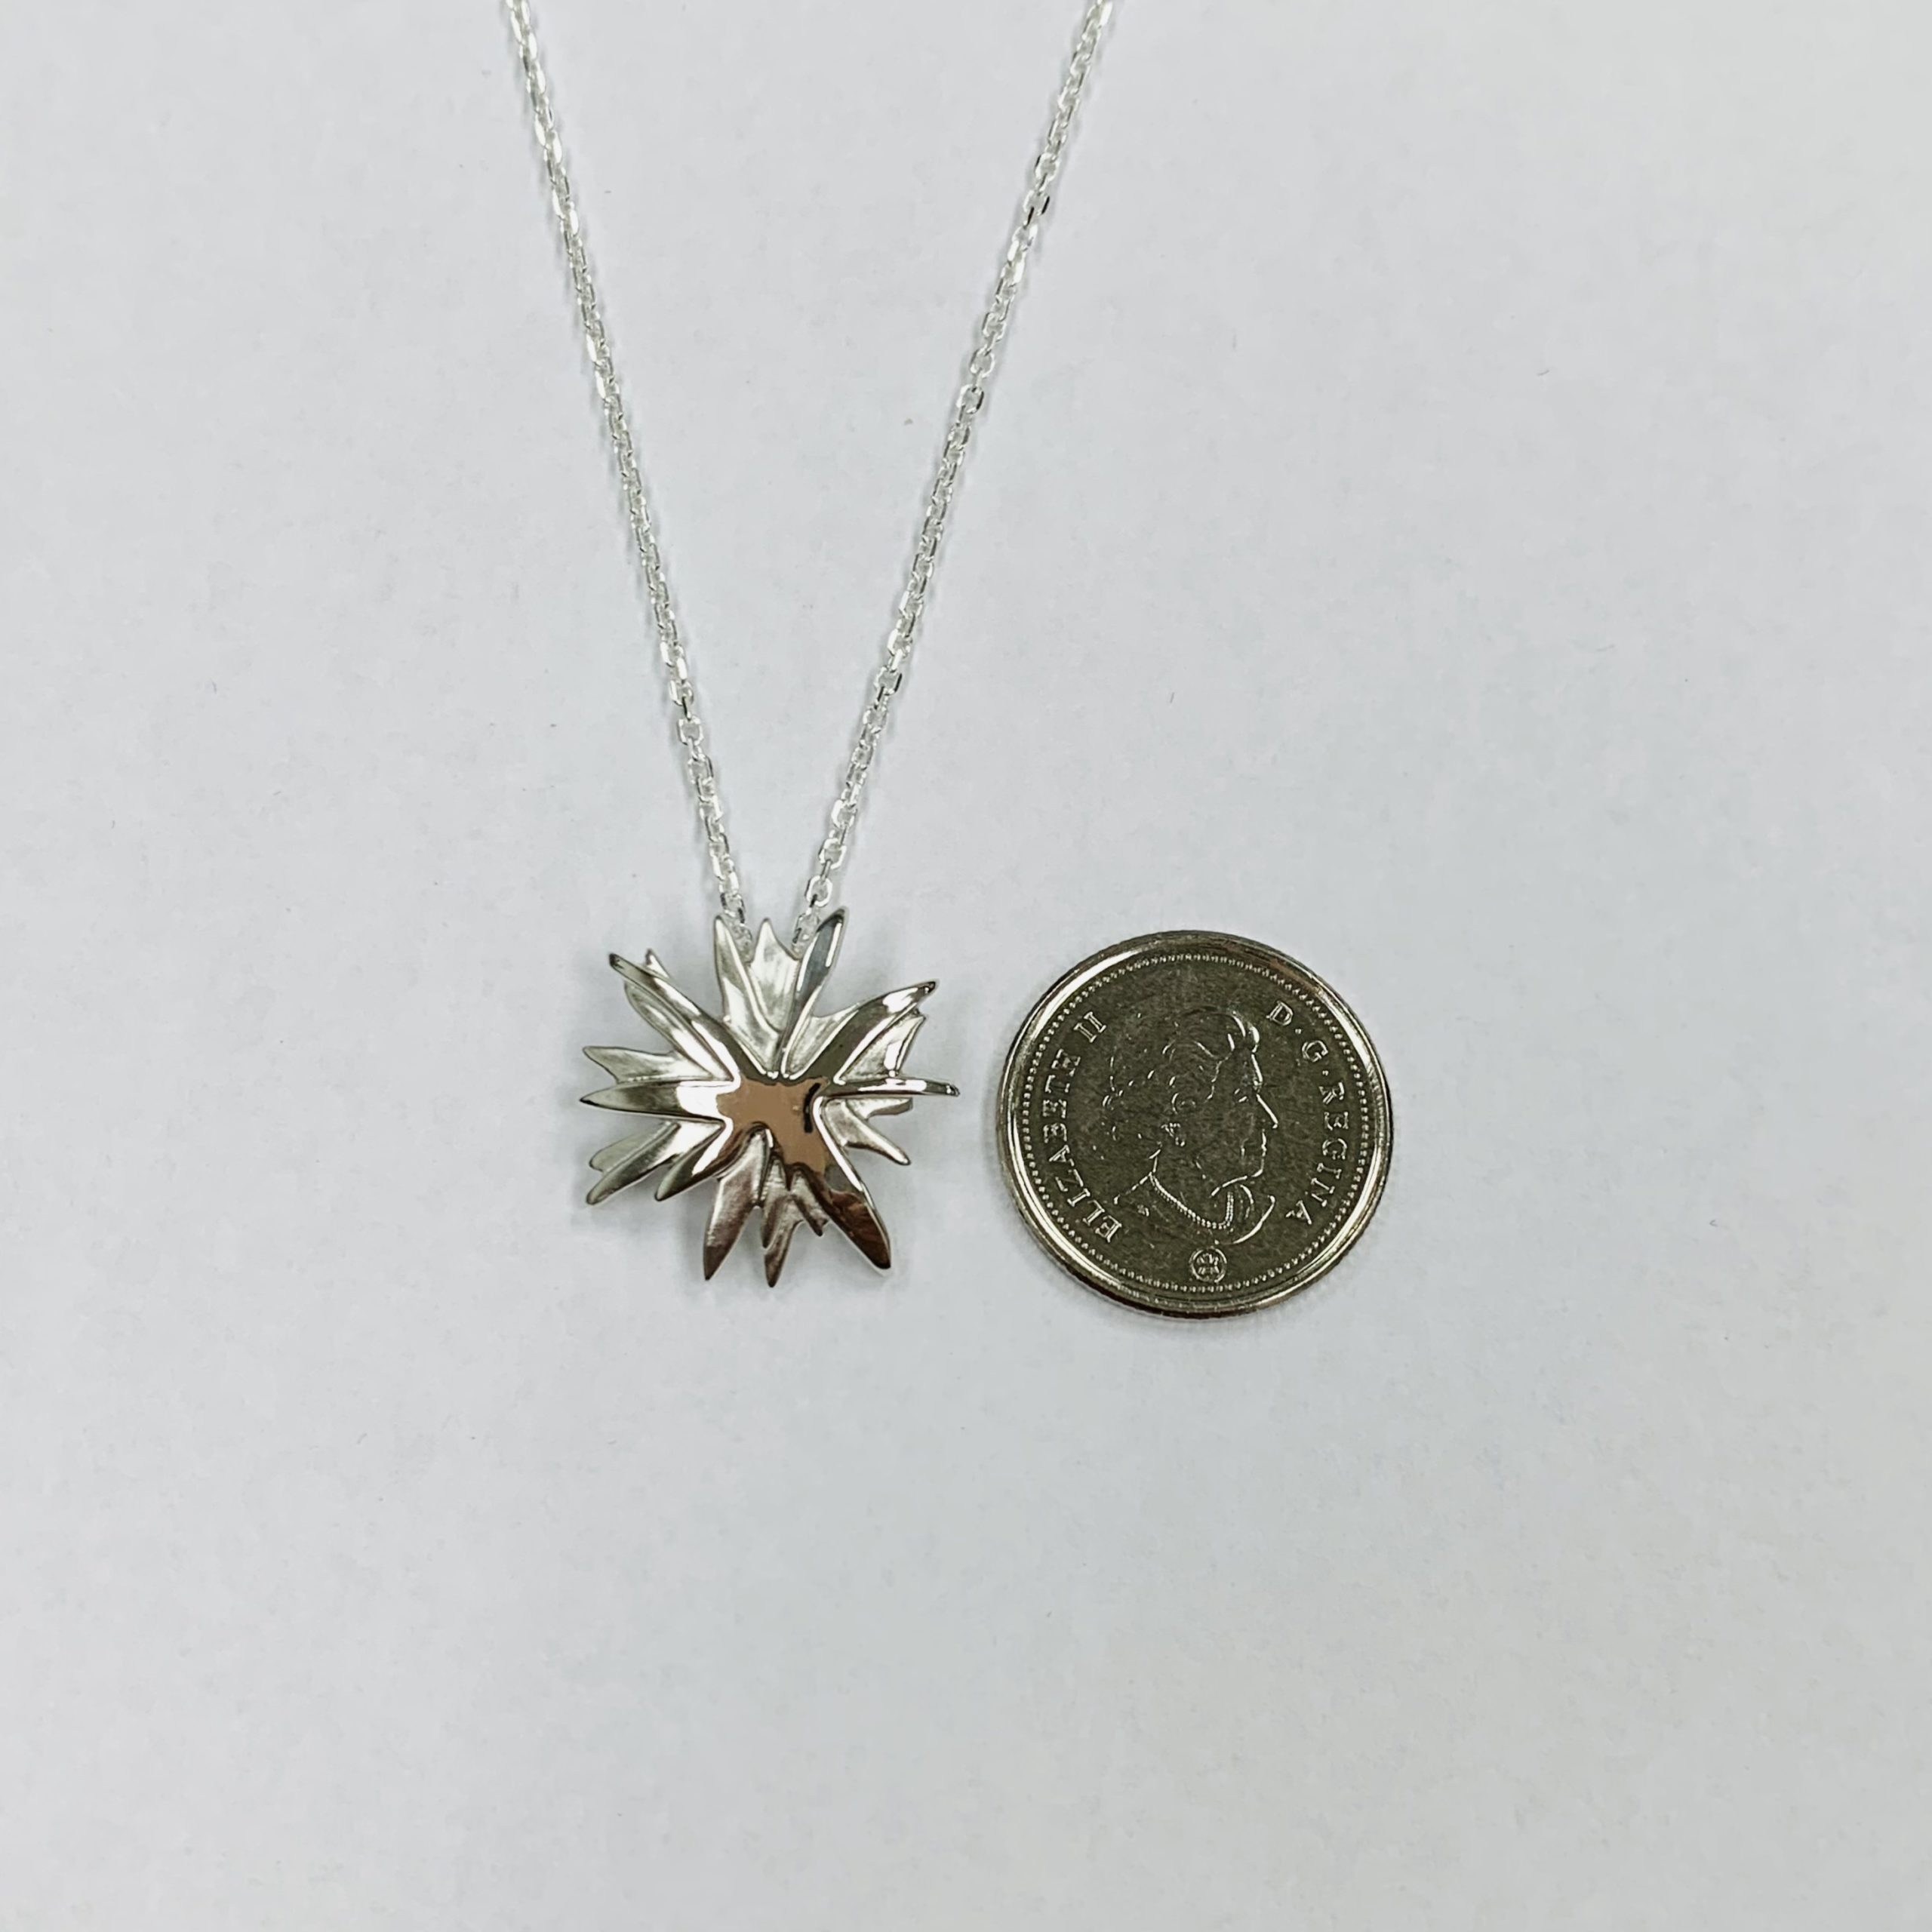 Mining Matters 'The Spark' Pendant shown side by side with a Canadian dime for size reference